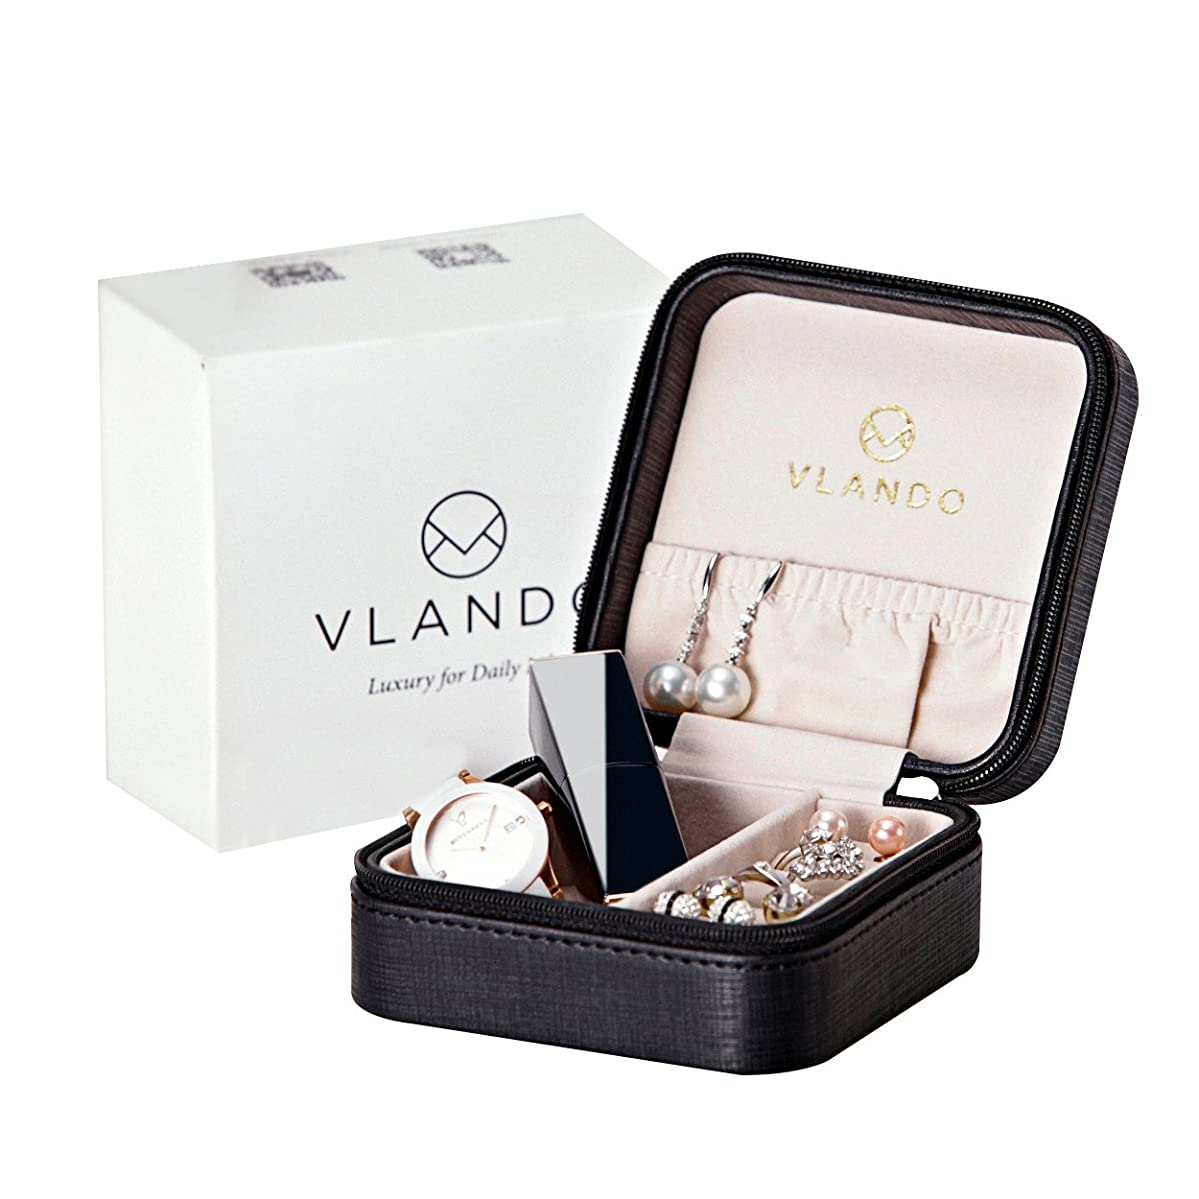 Vlando Small Travel Jewelry Box Organizer Display Storage Case for Rings Earrings Necklace (Black)